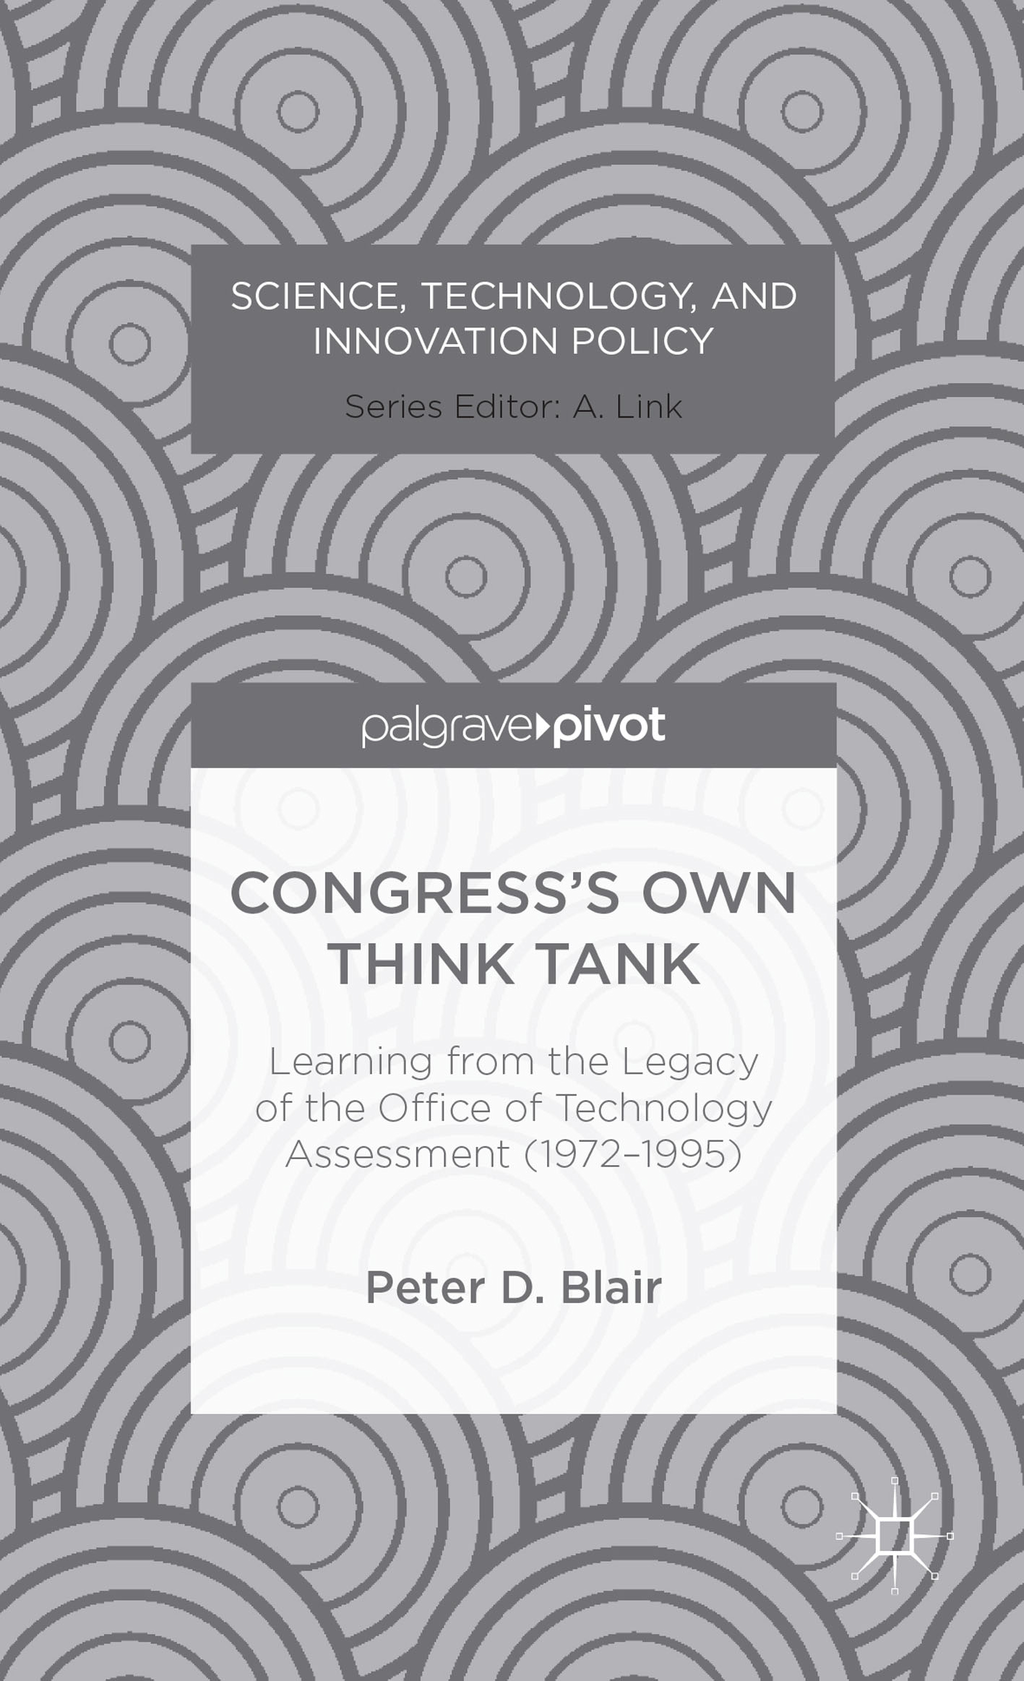 Congress?s Own Think Tank Learning from the Legacy of the Office of Technology Assessment (1972-1995)